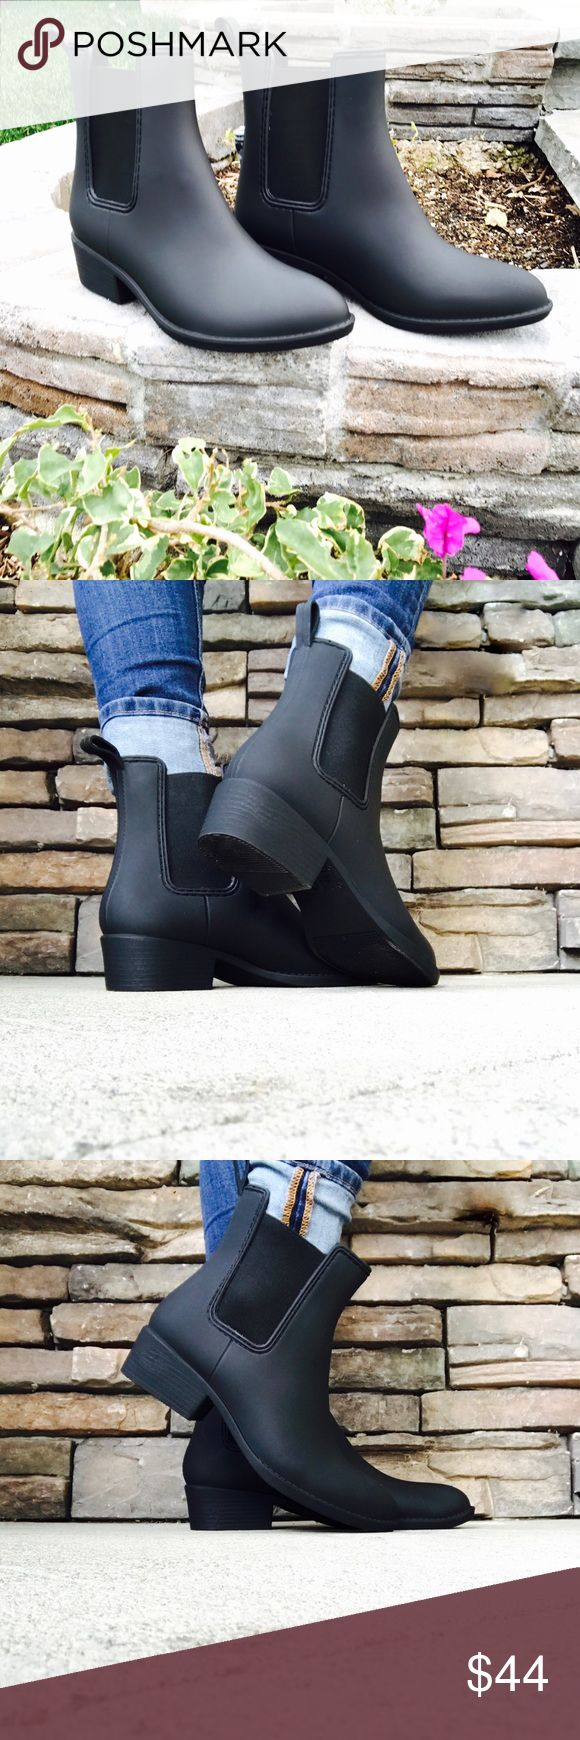 Matte Chelsea Rain Boot Casual Black Ankle Bootie •Brand New in Box • Waterproof •Matte Black Chelsea Rain Boots • All materials are vegan • Rubber • Stretchy Elastic to make Boot easy to put on and take off • Shoe Runs Small. Suggested to Order a Size Larger• Feel free to ask questions!•  www.thefairyden.com  Shoes Ankle Boots & Booties